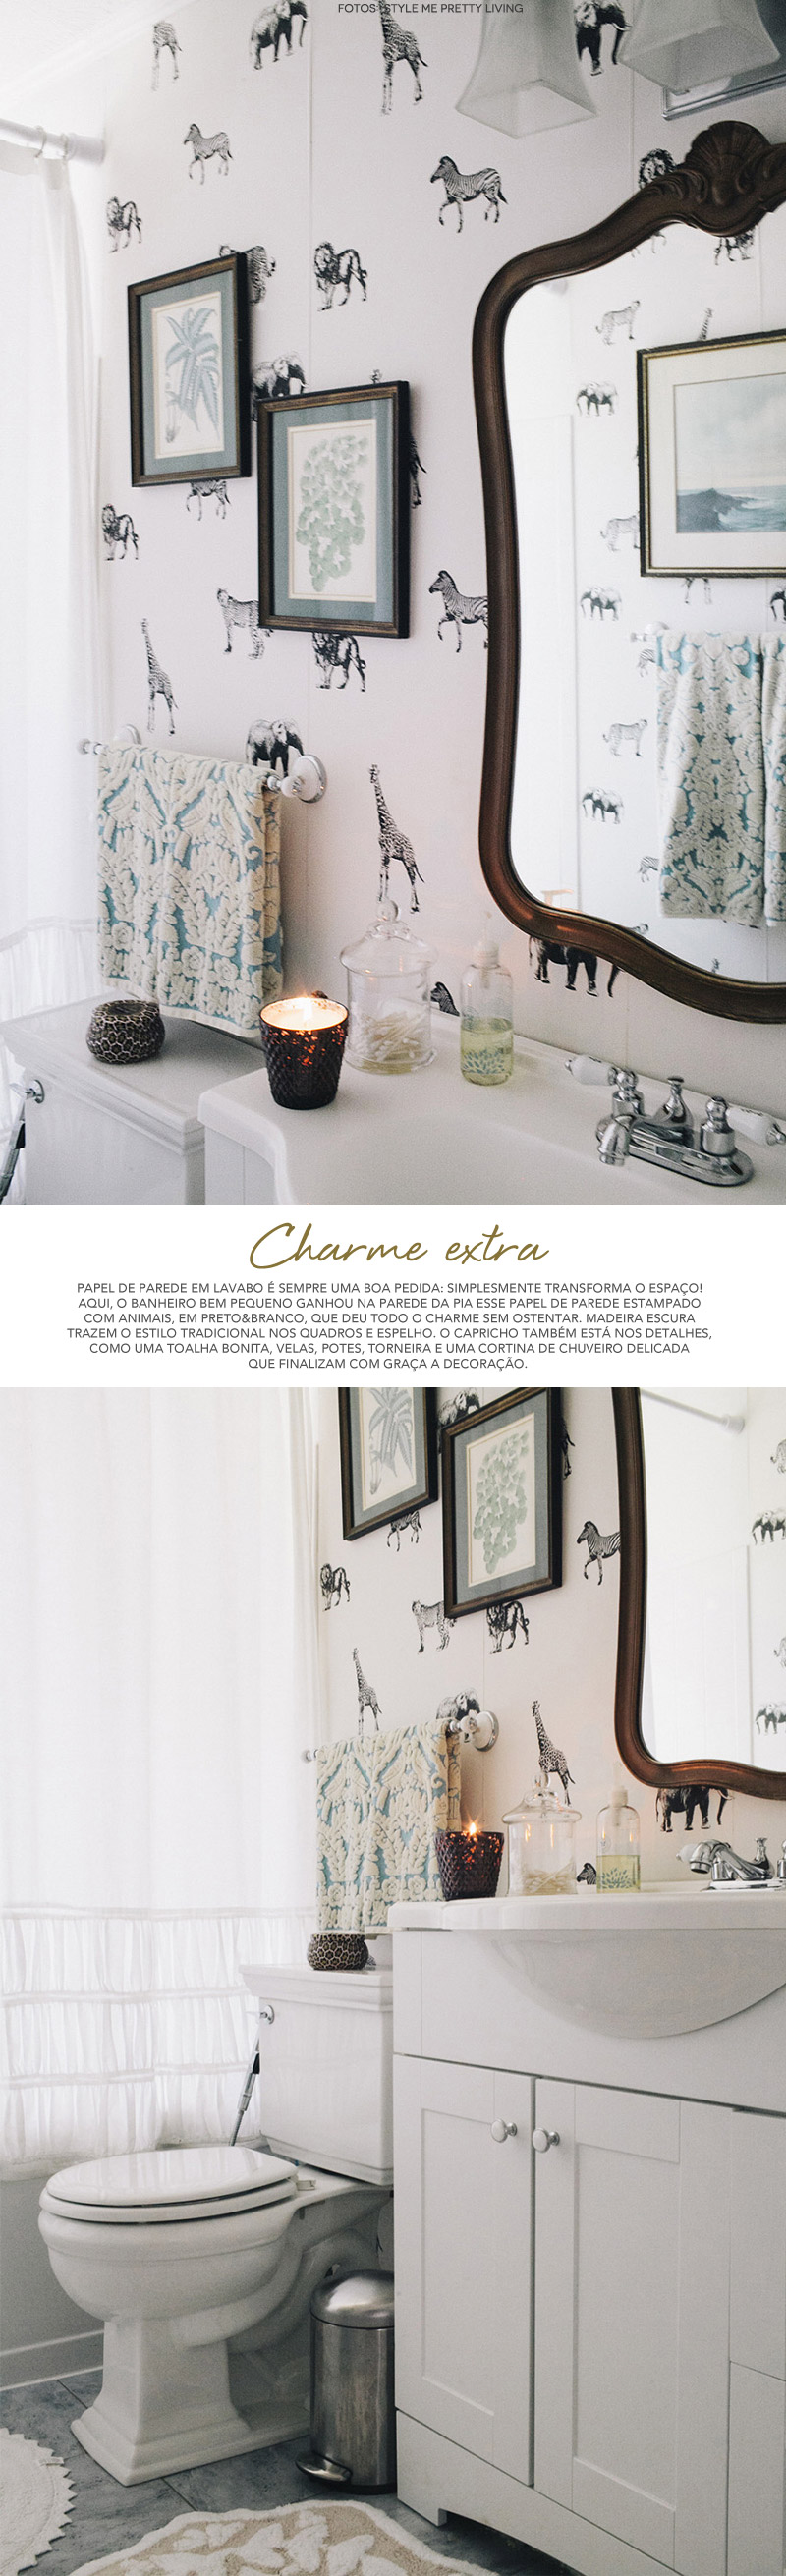 living-gazette-barbara-resende-decor-dia-lavabo-papel-parede-tradicional